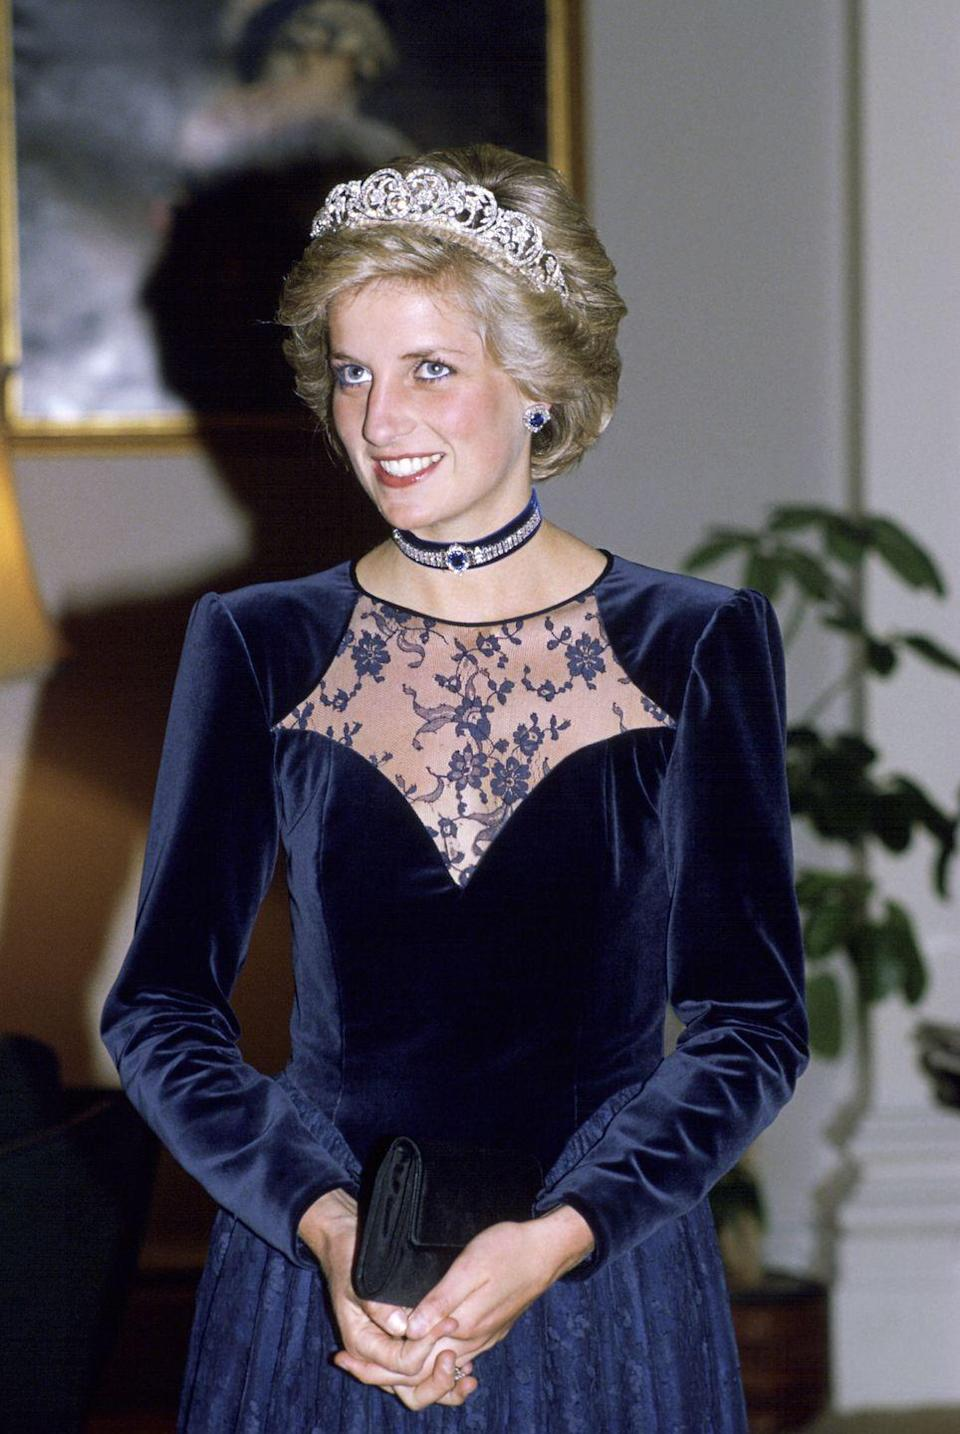 """<p>Princess Diana refashioned the watch and ring from the Saudi Sapphire Suite and turned them into a choker, which she wore with the Saudi earrings and <a href=""""https://www.townandcountrymag.com/style/jewelry-and-watches/a34669830/spencer-tiara-princess-diana-history/"""" rel=""""nofollow noopener"""" target=""""_blank"""" data-ylk=""""slk:the Spencer Tiara"""" class=""""link rapid-noclick-resp"""">the Spencer Tiara</a> to a state dinner in Australia in 1985.</p>"""